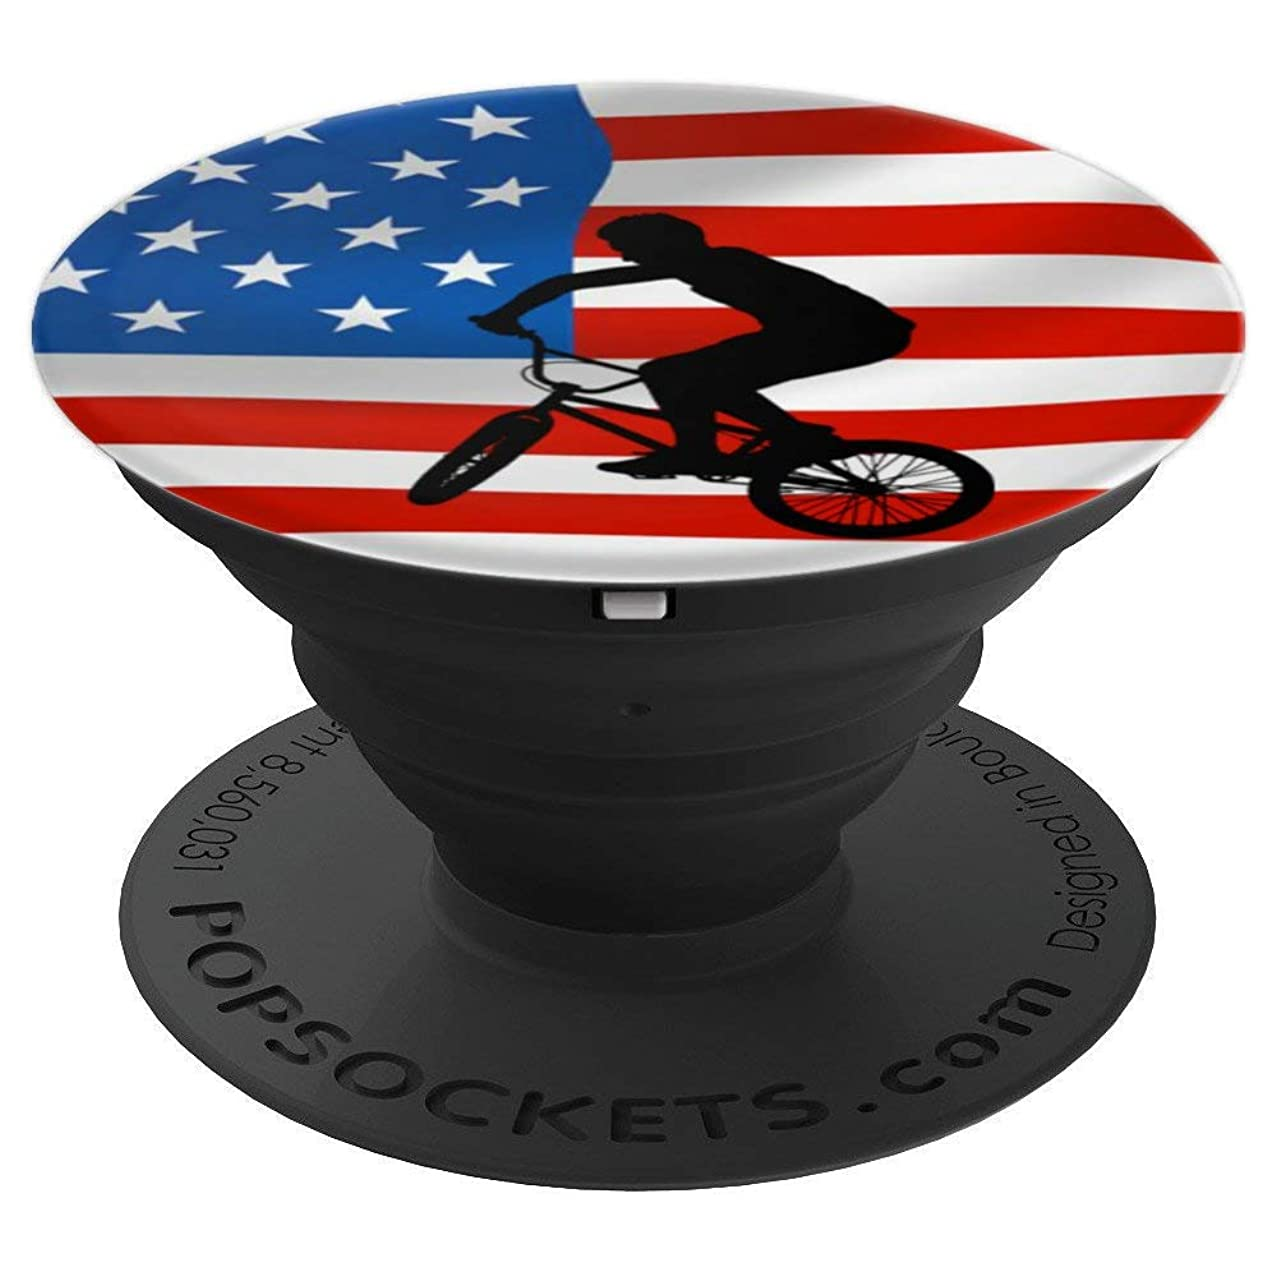 BMX Gift Vintage Style American Retro Shirt USA BMX Rider - PopSockets Grip and Stand for Phones and Tablets